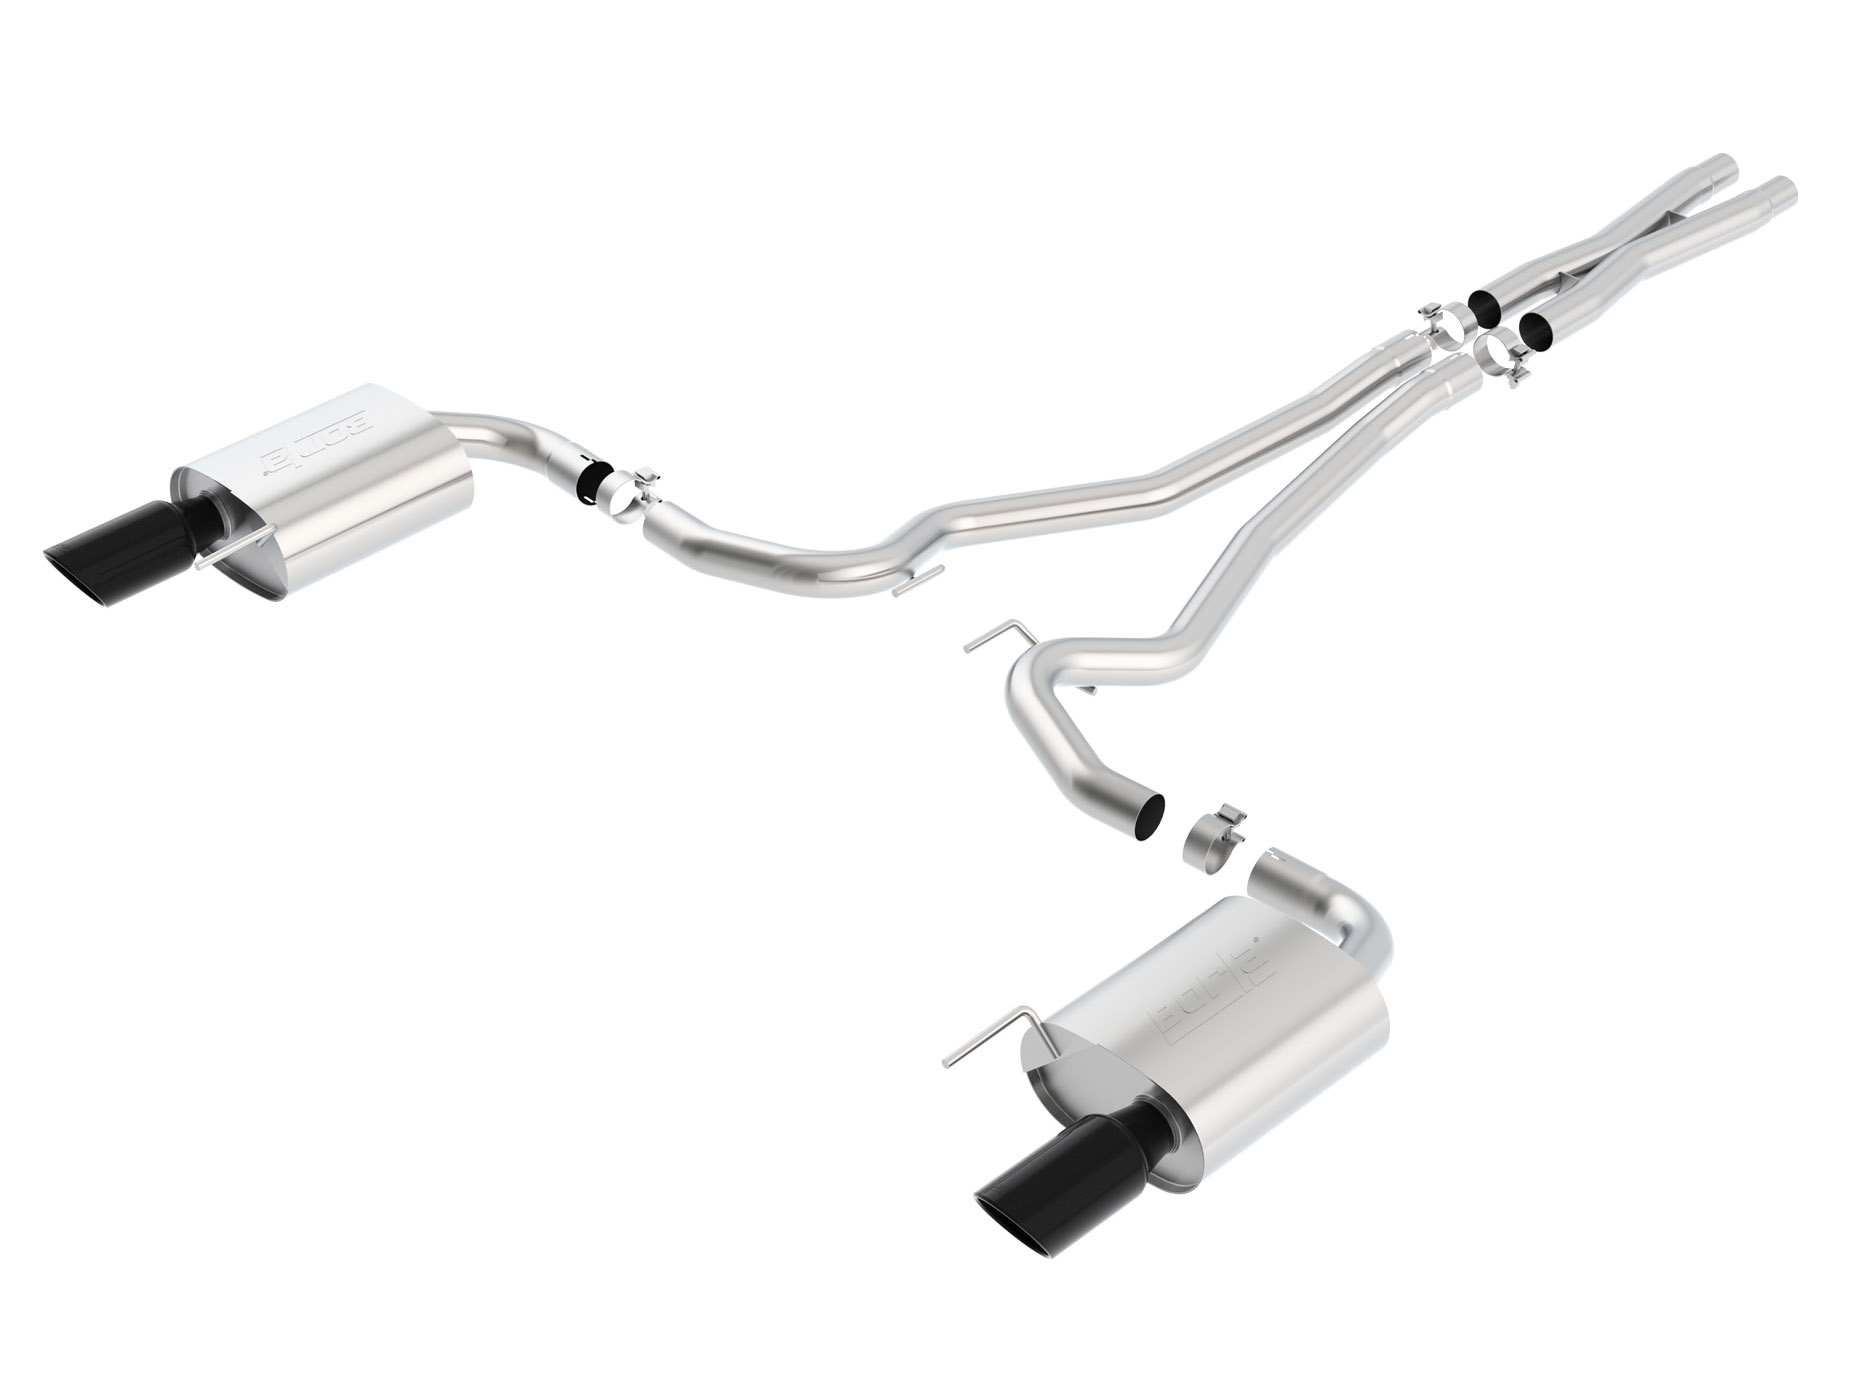 Borla S-Type Cat-Back 15-17 Ford Mustang GT 5.0L V8 MT/AT 2.5in pipe 4in tip (Black Chrome)